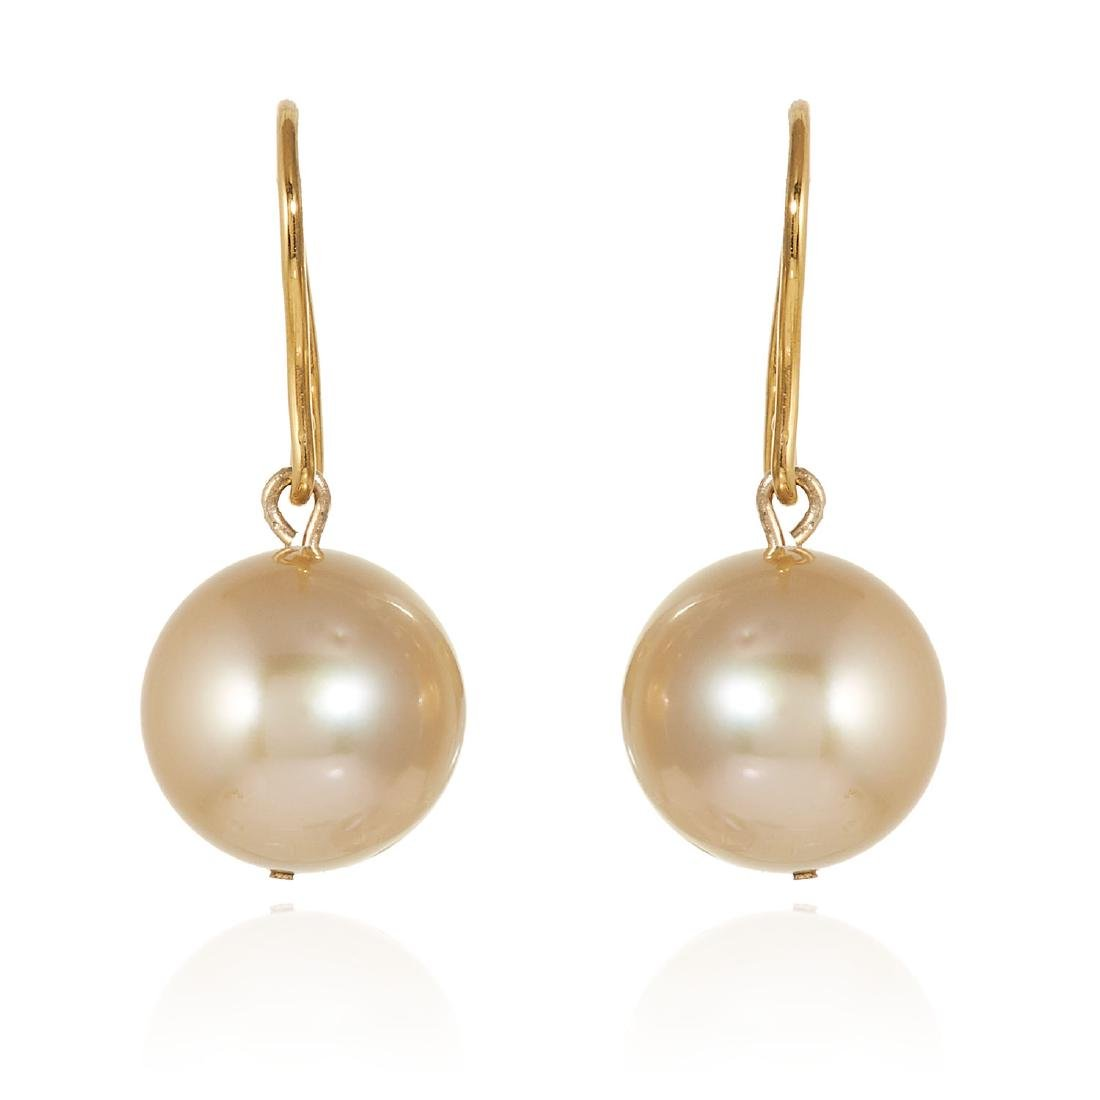 A PAIR OF GOLDEN PEARL EARRINGS 12.0mm pearls, 2.8cm,